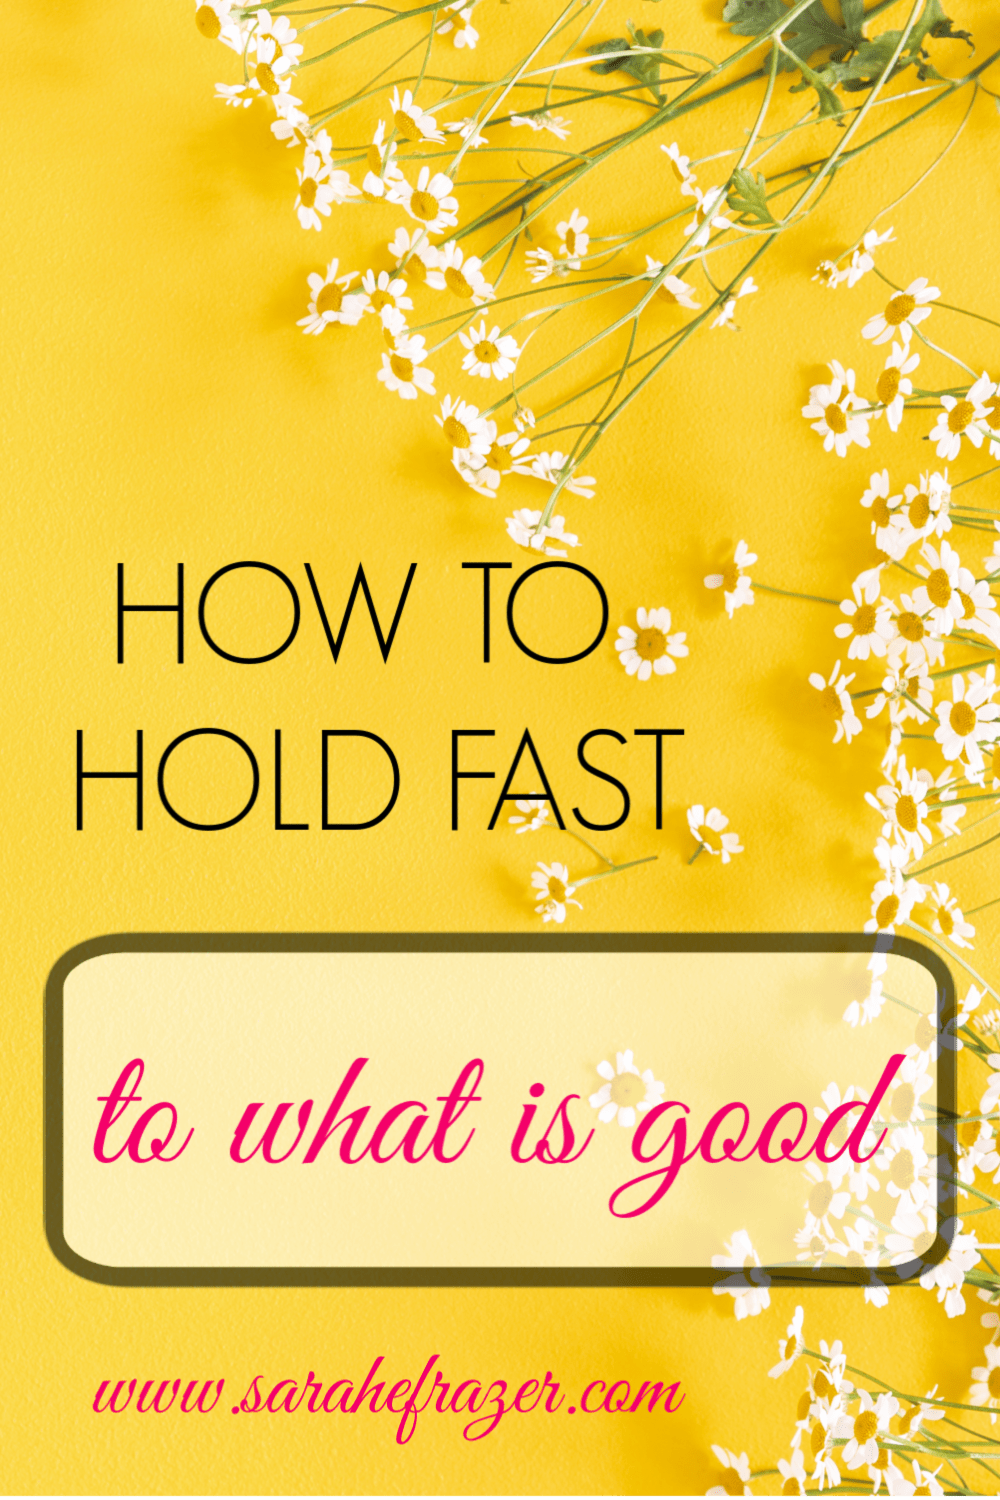 Holding Fast to What is Good